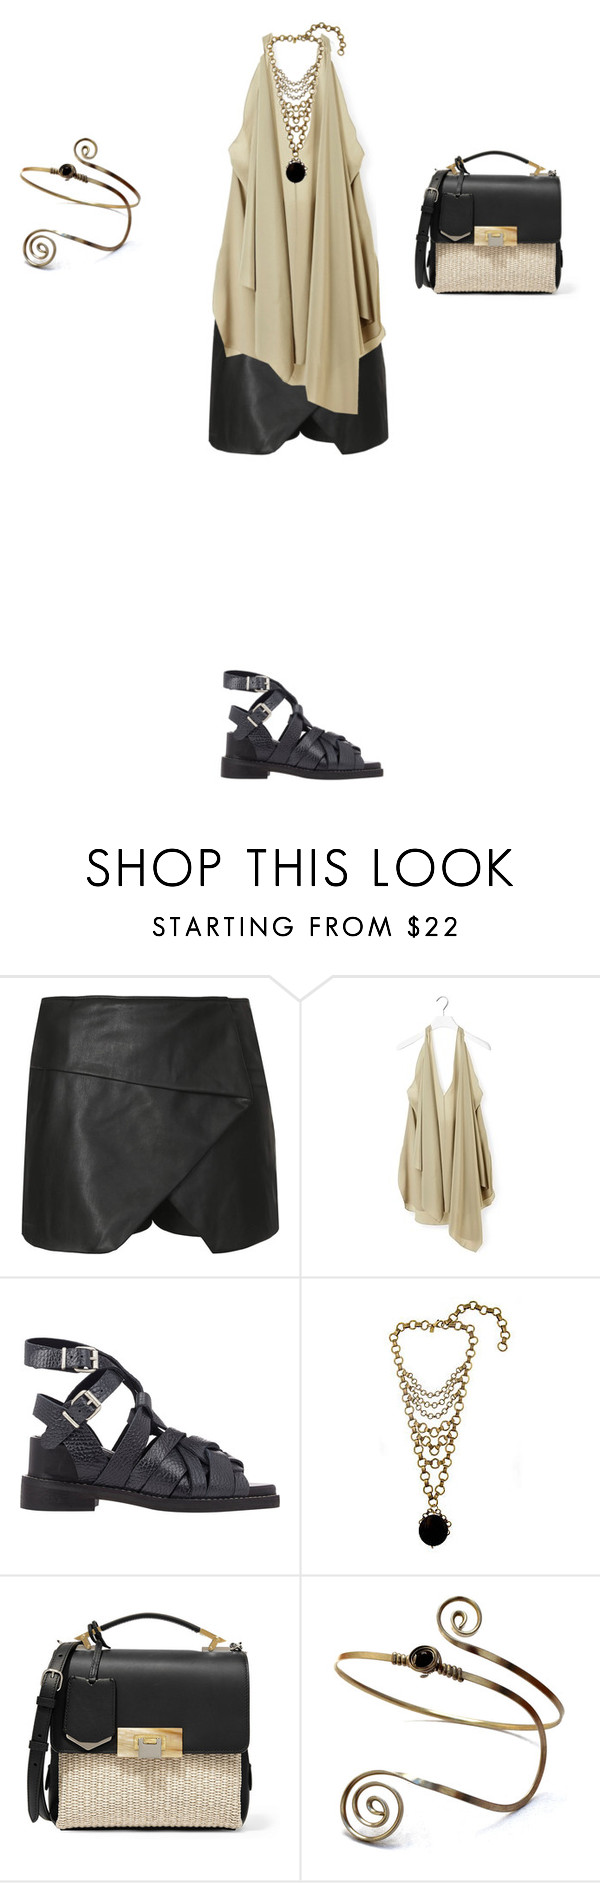 """""""Untitled #1001"""" by elenekhurtsilava ❤ liked on Polyvore featuring Topshop, Chloé, Acne Studios, Lionette and Balenciaga"""